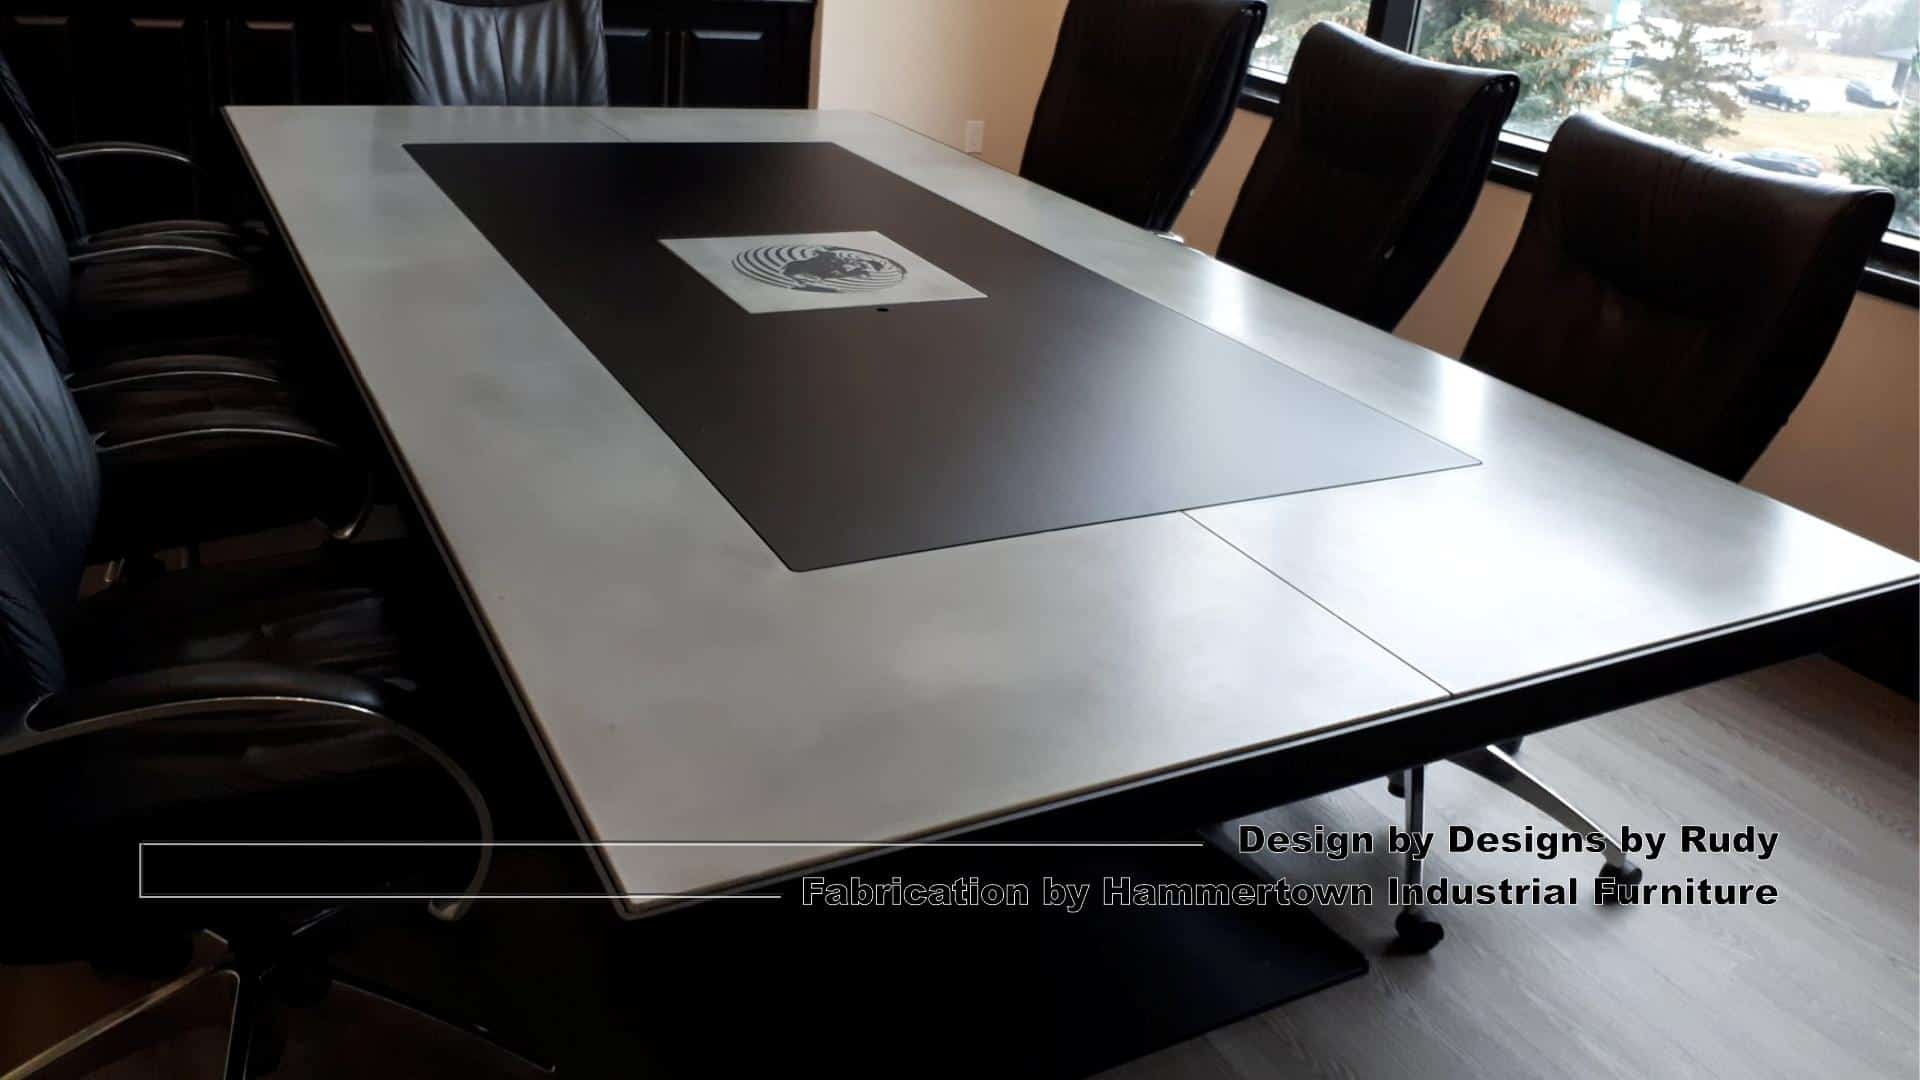 2 Concrete and steel boardroom table for NAC, Designs by Rudy, Hammertown Industrial Furniture, angle view